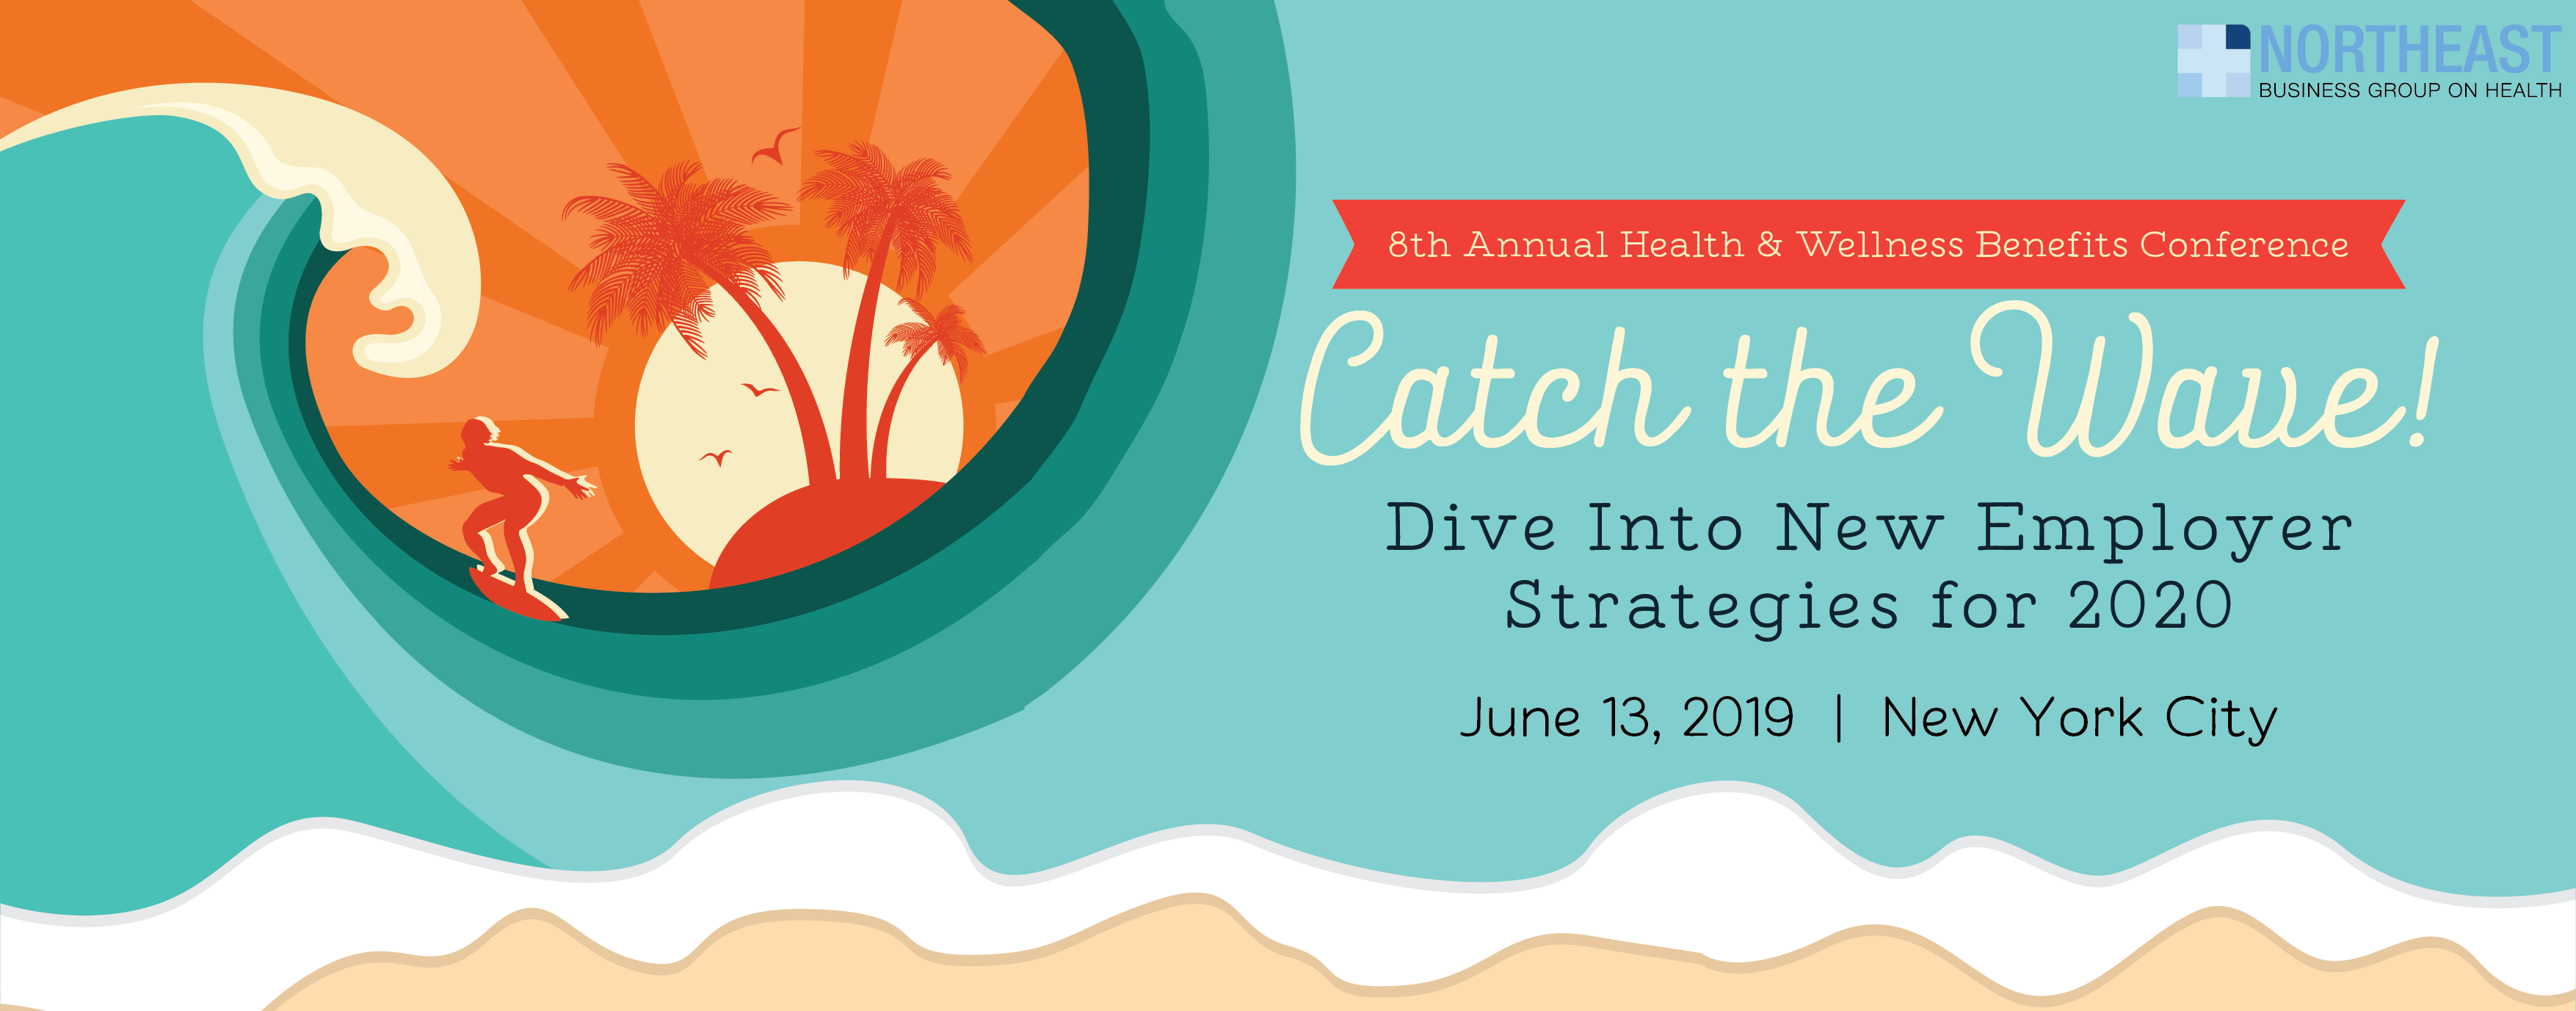 Catch the Wave! Dive into New Employer Strategies for 2020 -